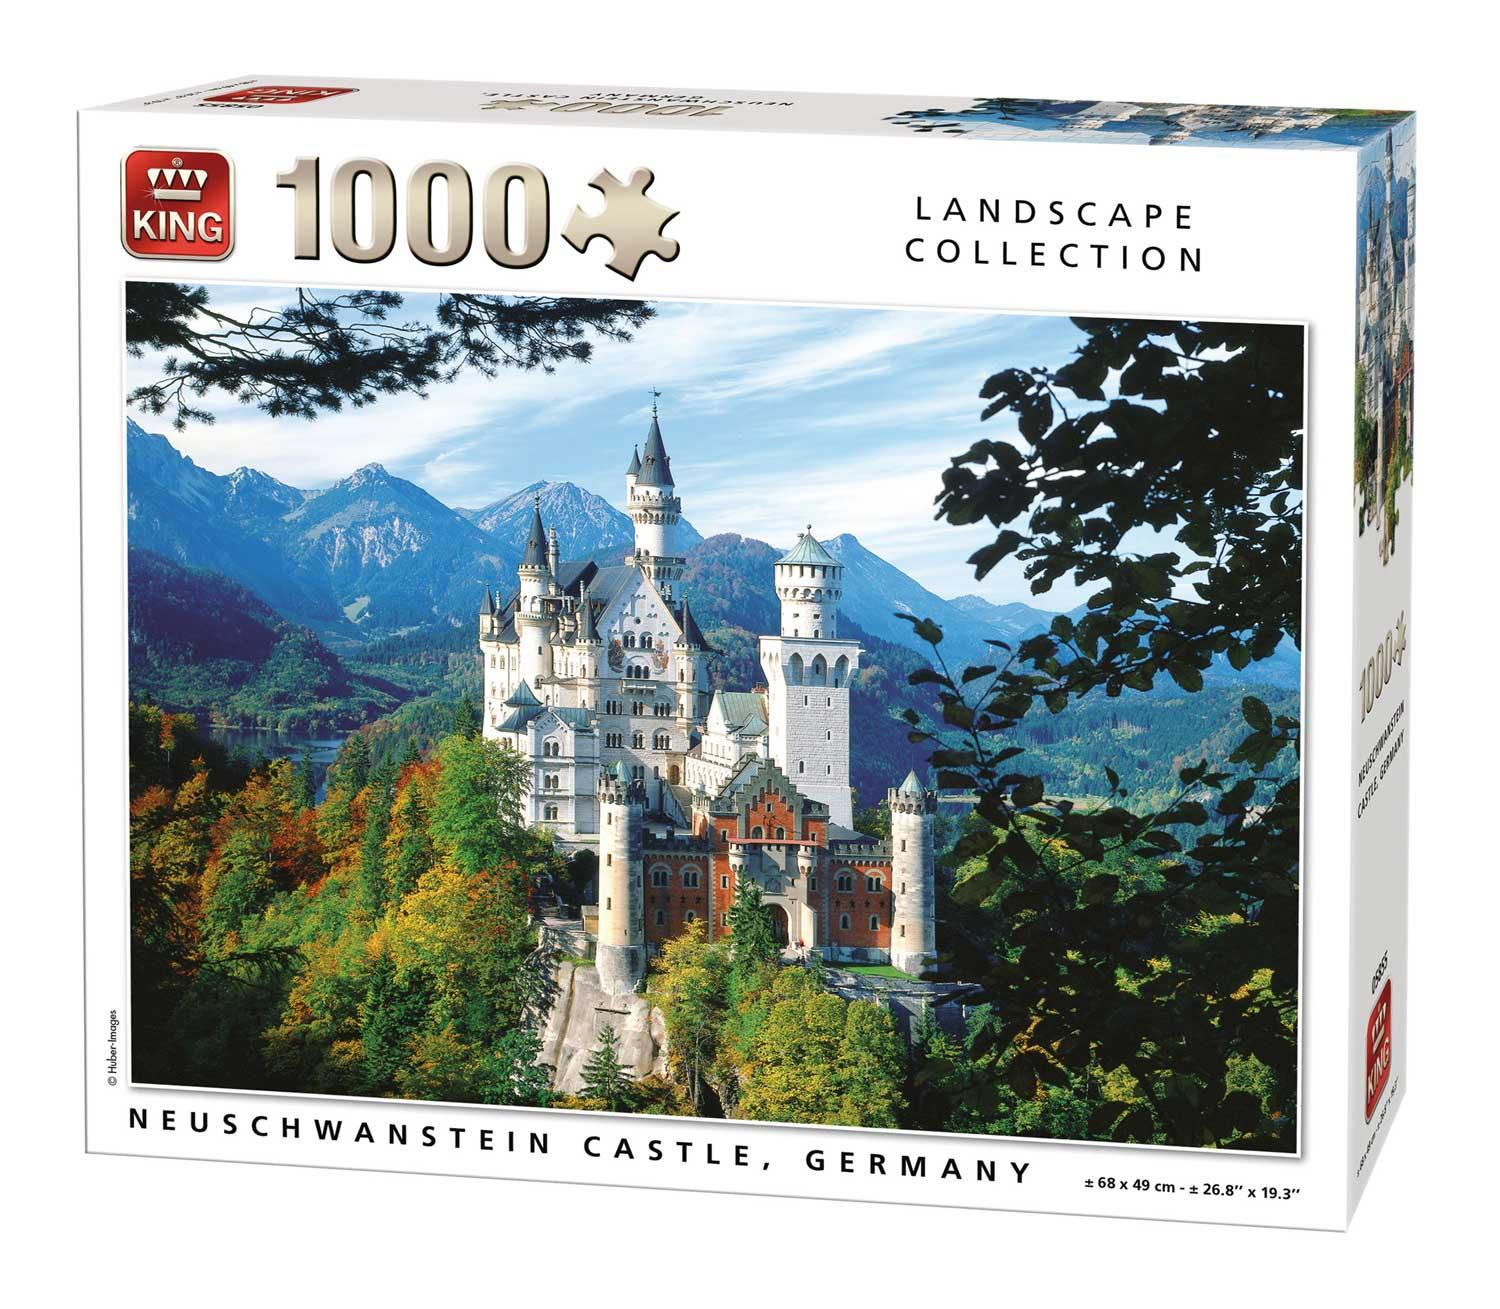 King Neuschwanstein Castle, Germany  Jigsaw Puzzle (1000 Pieces)